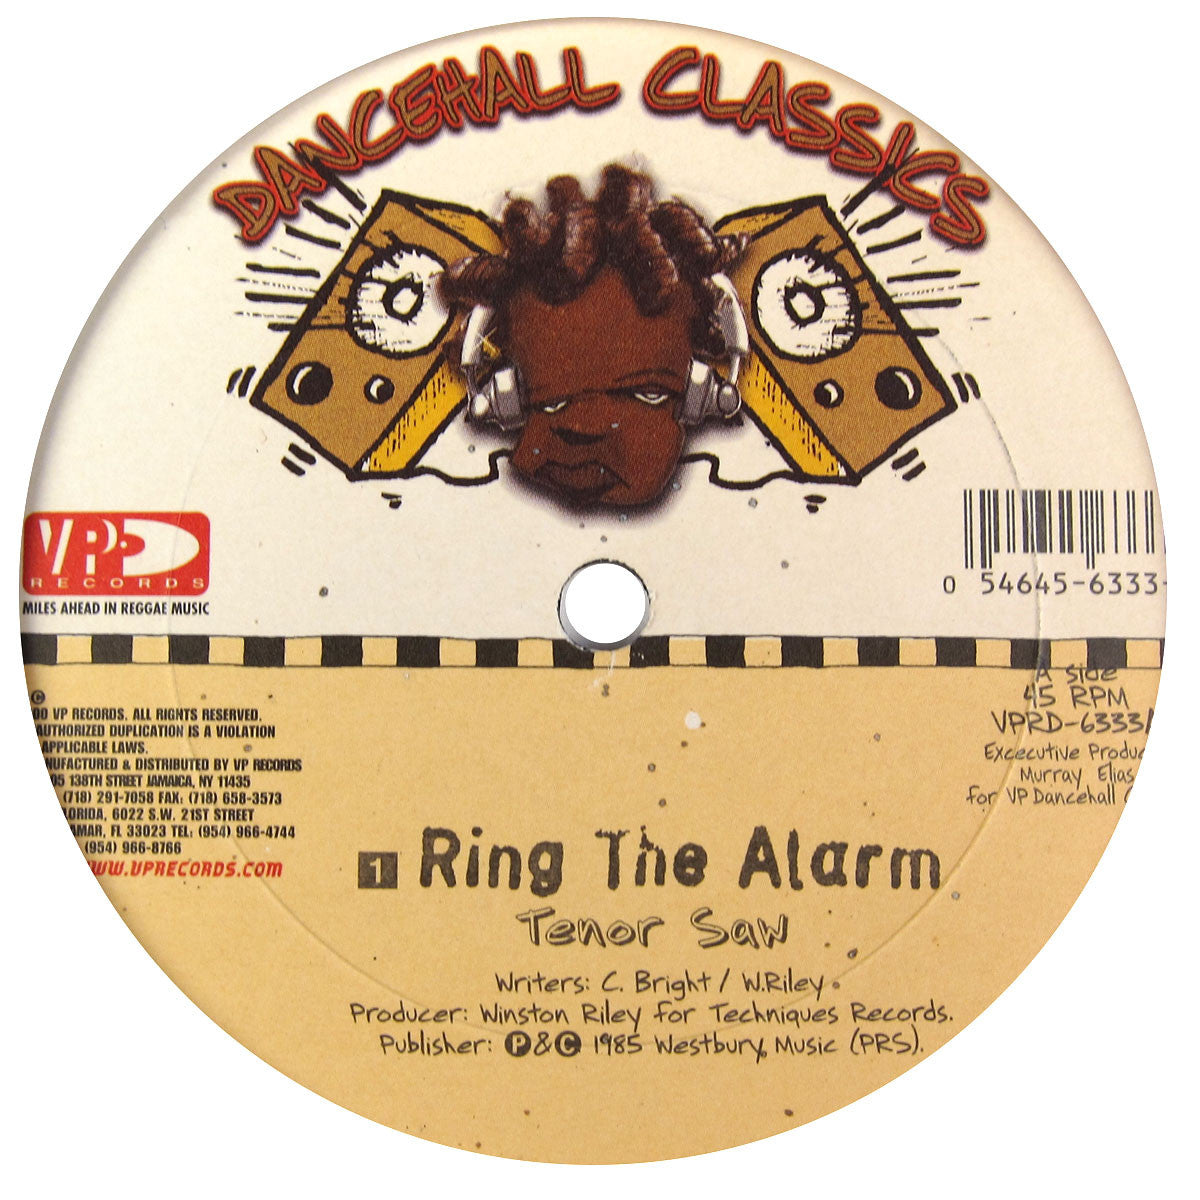 "VP Records: Dancehall Classics 5x12"" Pack (Diseases, Murder She Wrote, Ring The Alarm, Bam Bam) 2"